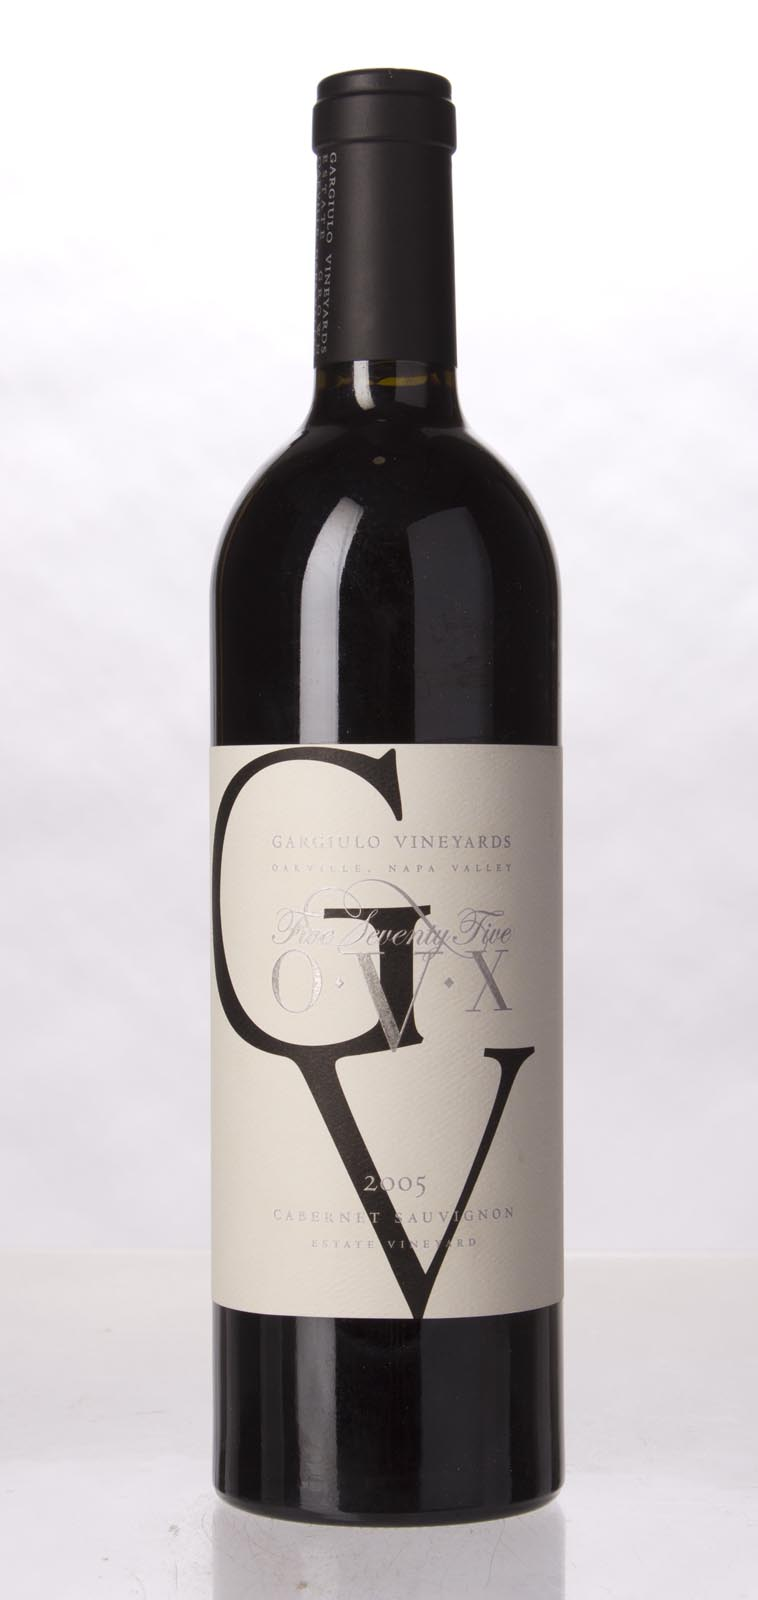 Gargiulo Vineyards Cabernet Sauvignon 575 OVX 2005, 750mL () from The BPW - Merchants of rare and fine wines.